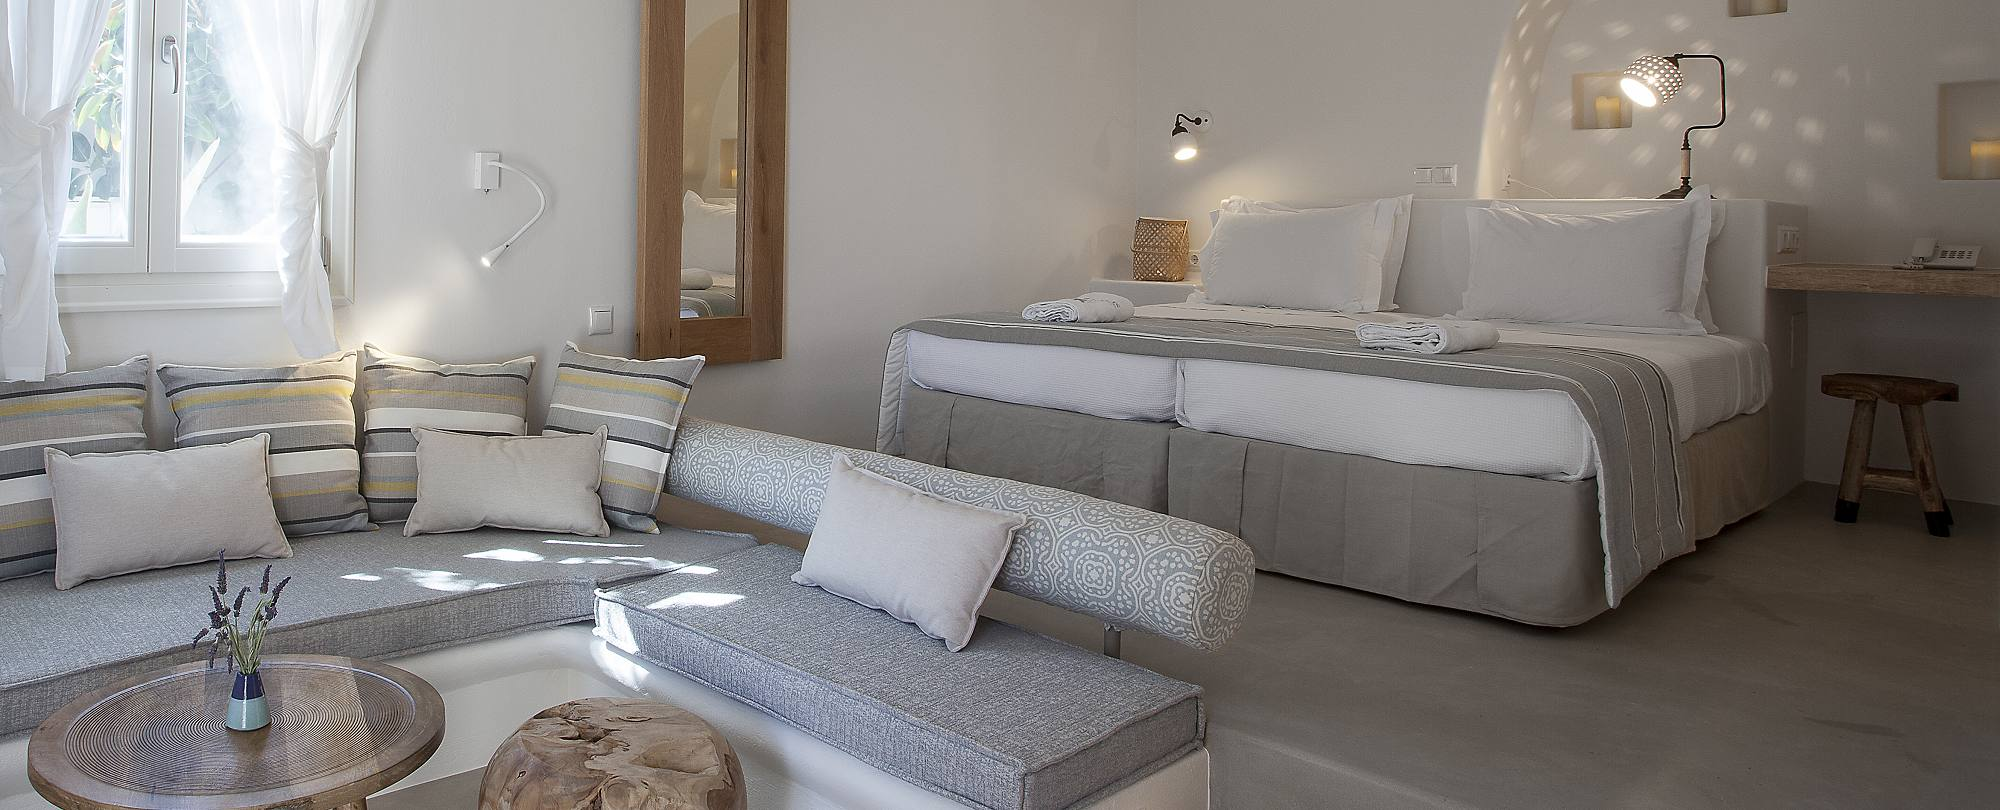 Naxos Greece Suites